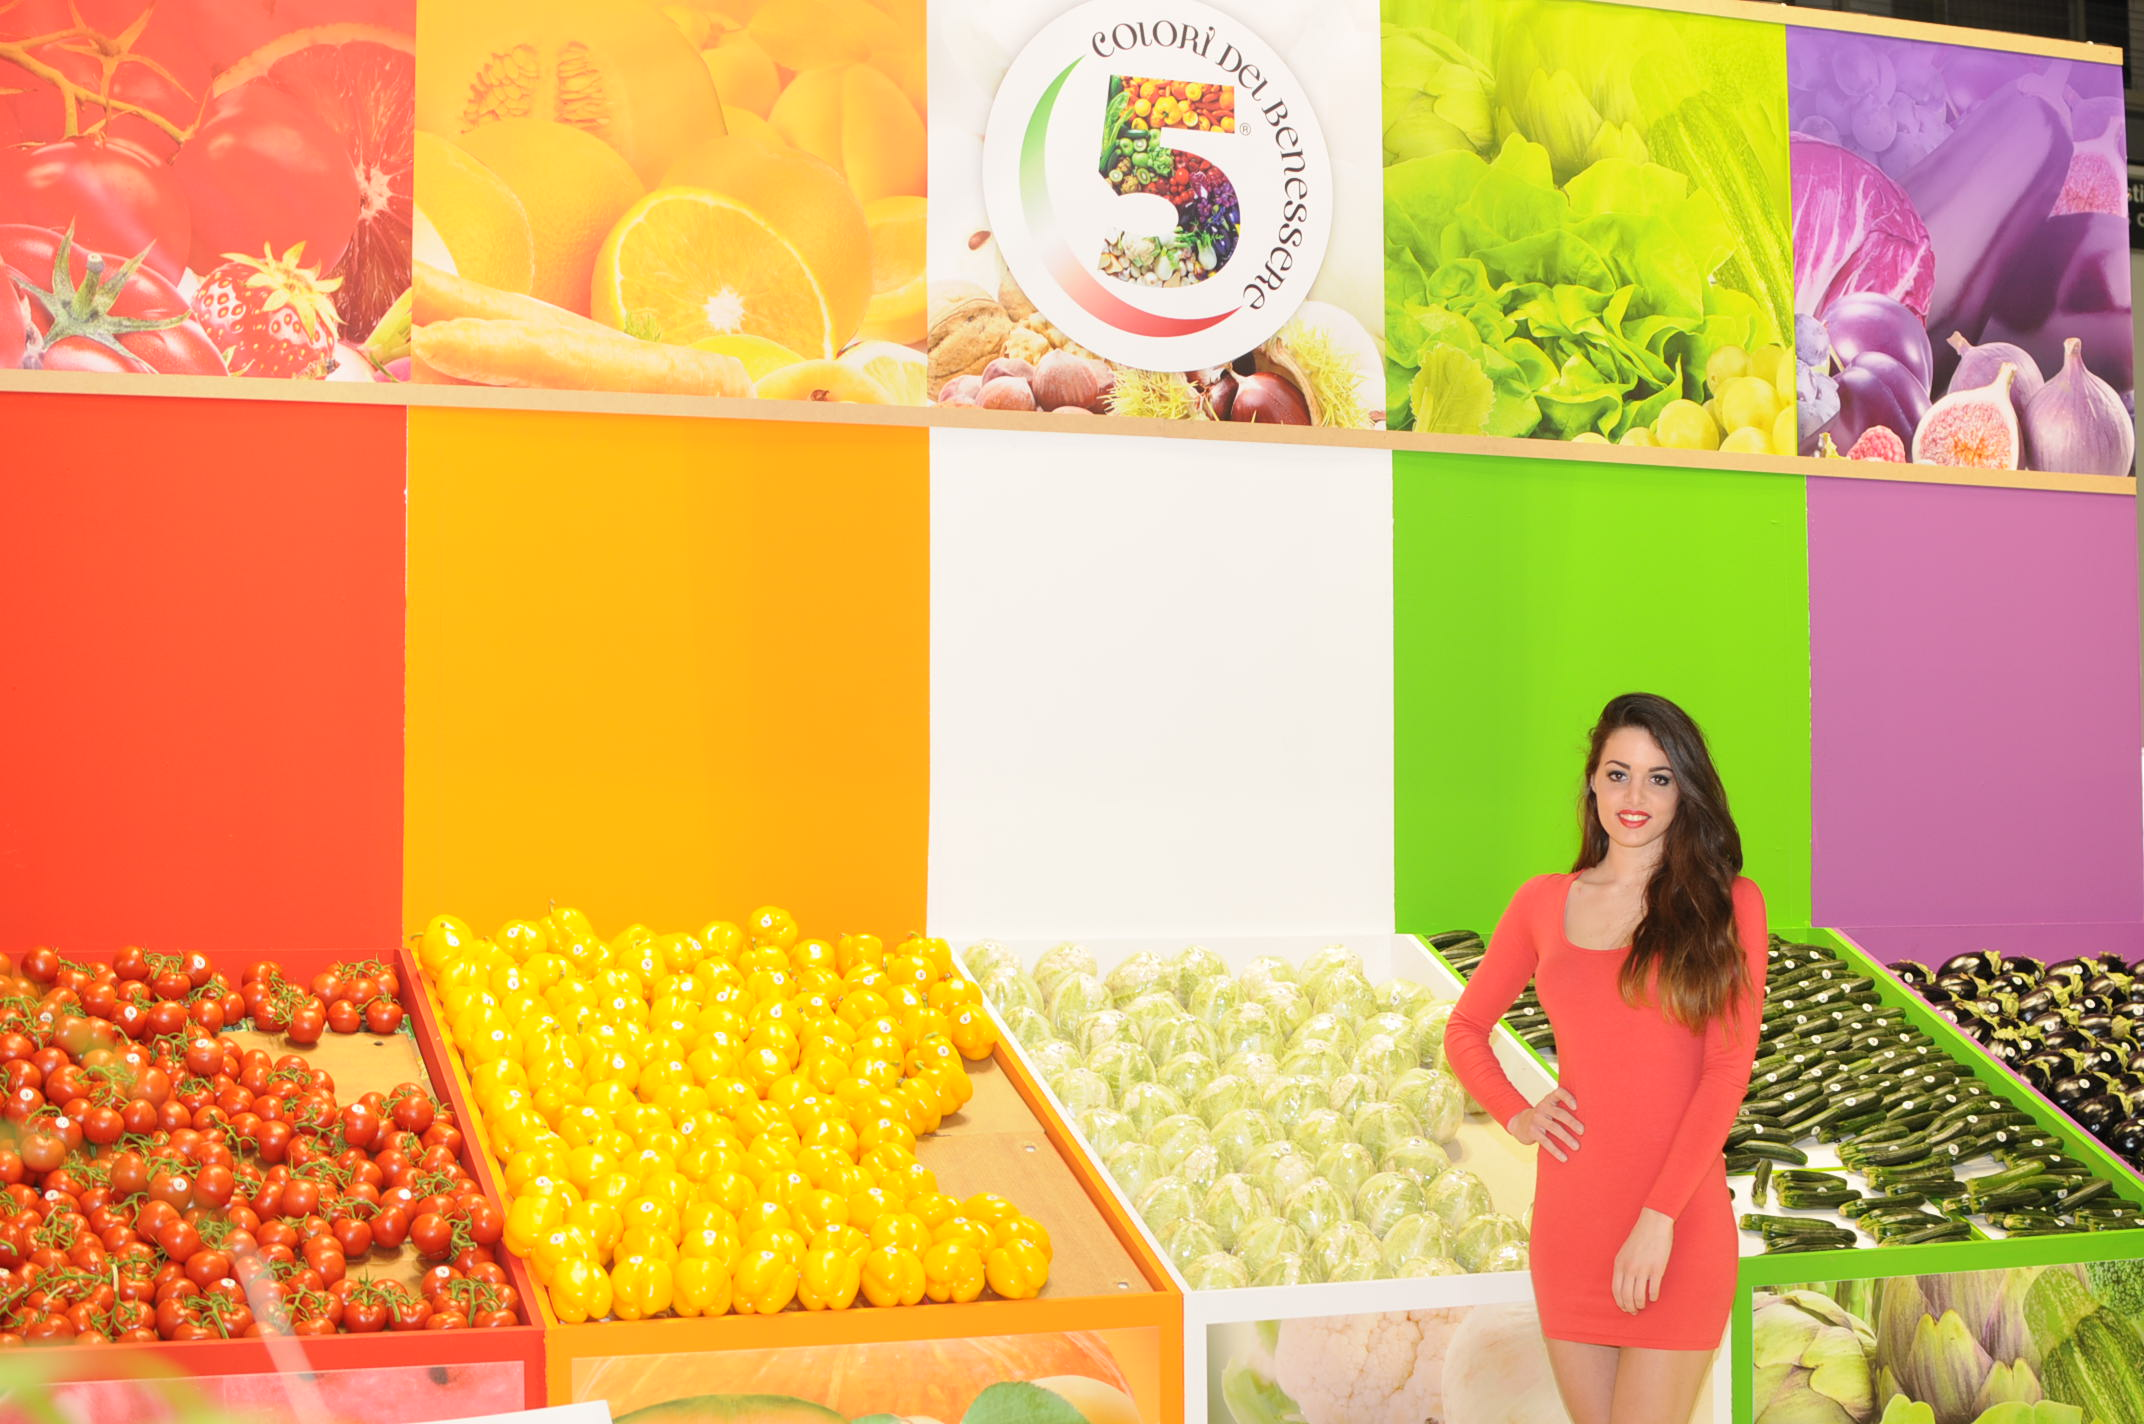 Fruit Innovation is Fiera Milano and Ipack-Ima spa's answer to the demand for innovation and internationalization in the fruit & vegetable supply chain. The exhibition showcases innovation-driving products, technologies and services.